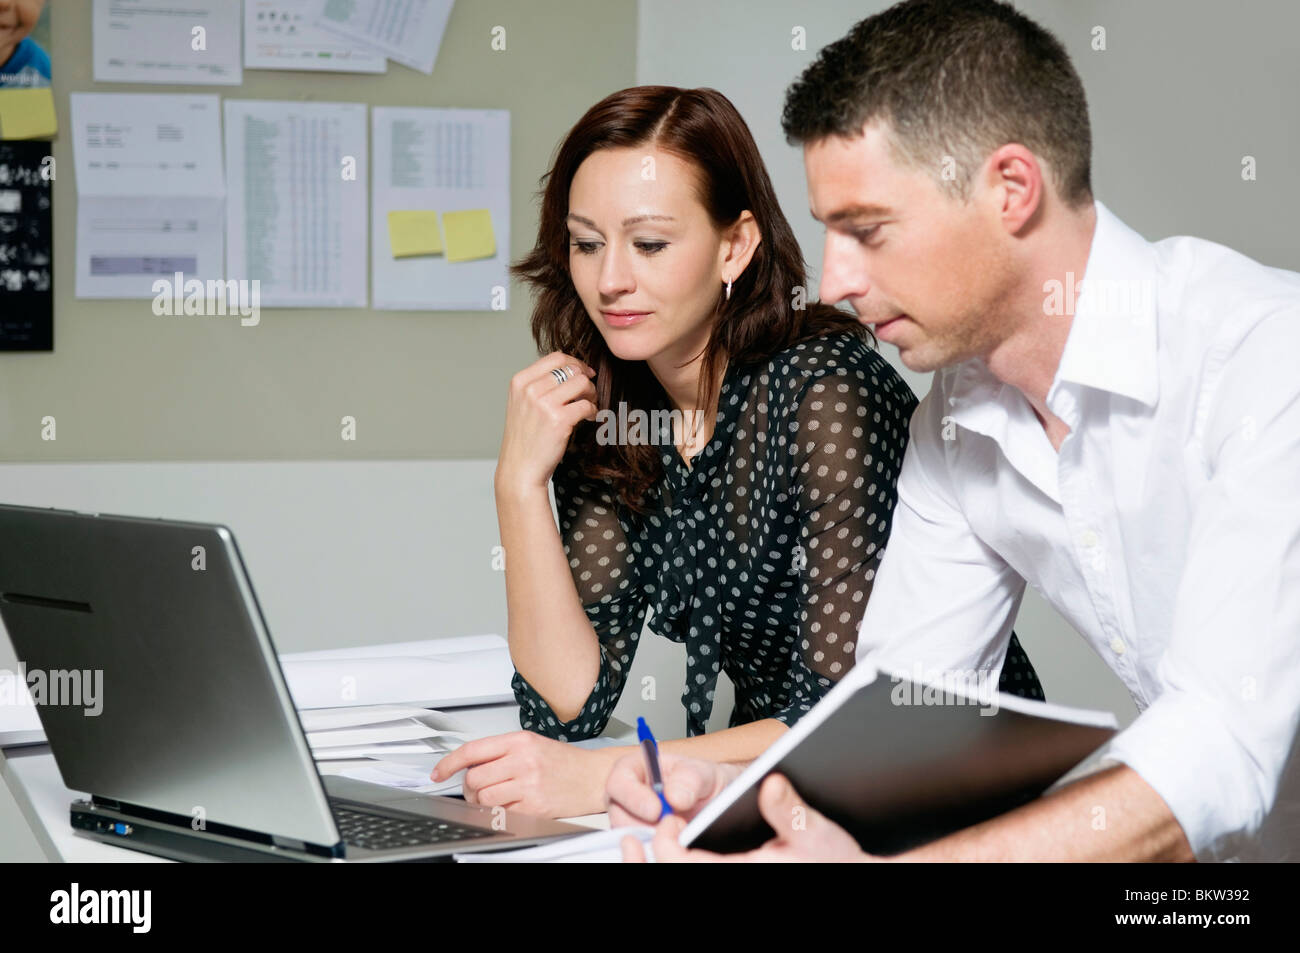 Colleagues with lap top - Stock Image